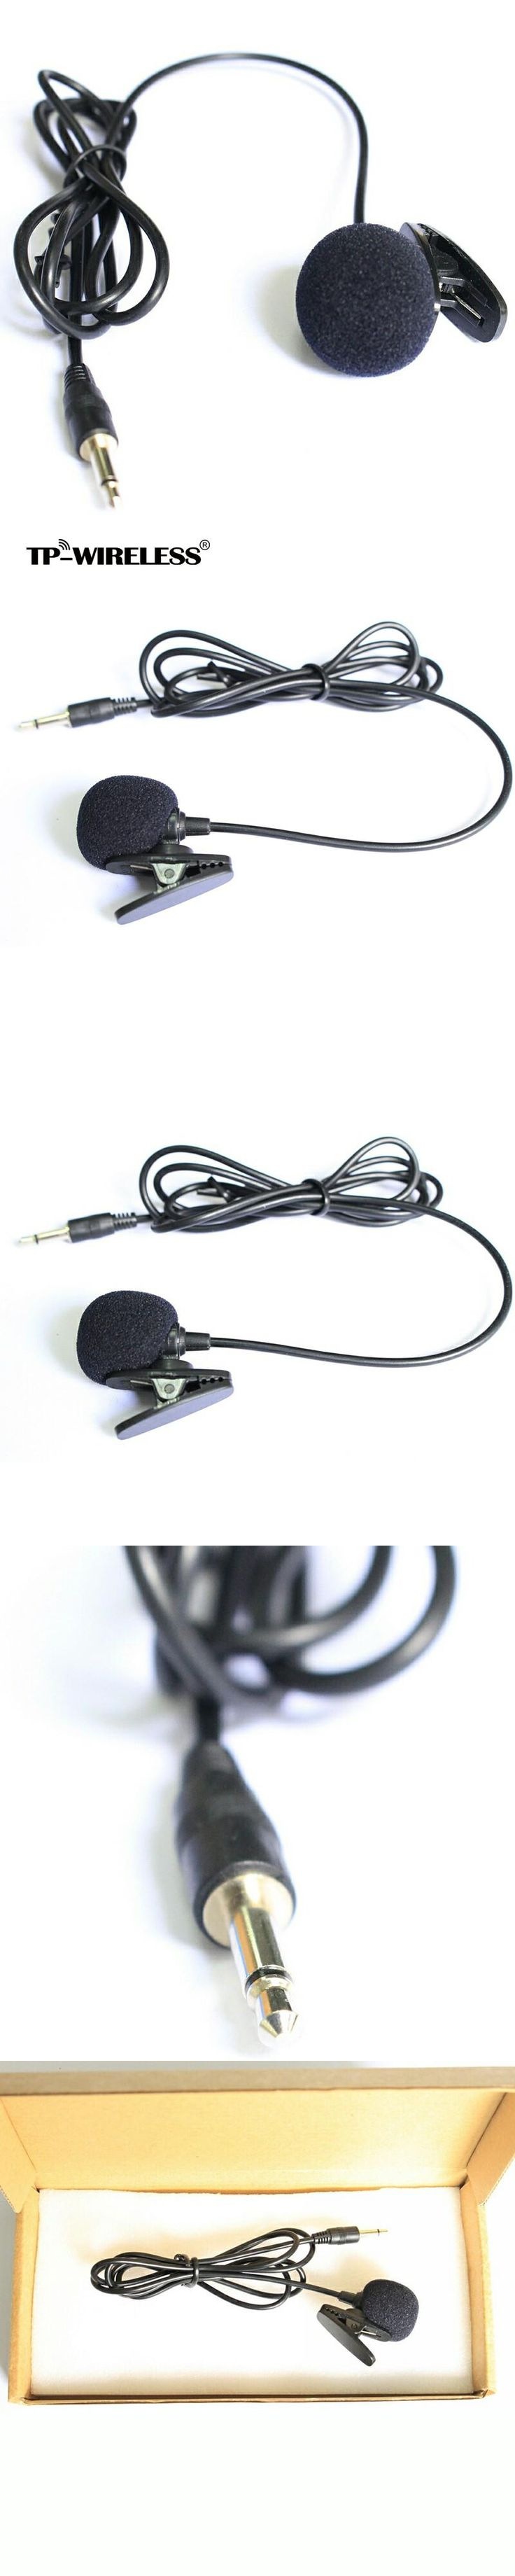 """Top Quality Cardioid Lapel Tie Clip-on Lavalier Condenser Microphone 1/8""""(3.5mm) Plug"""